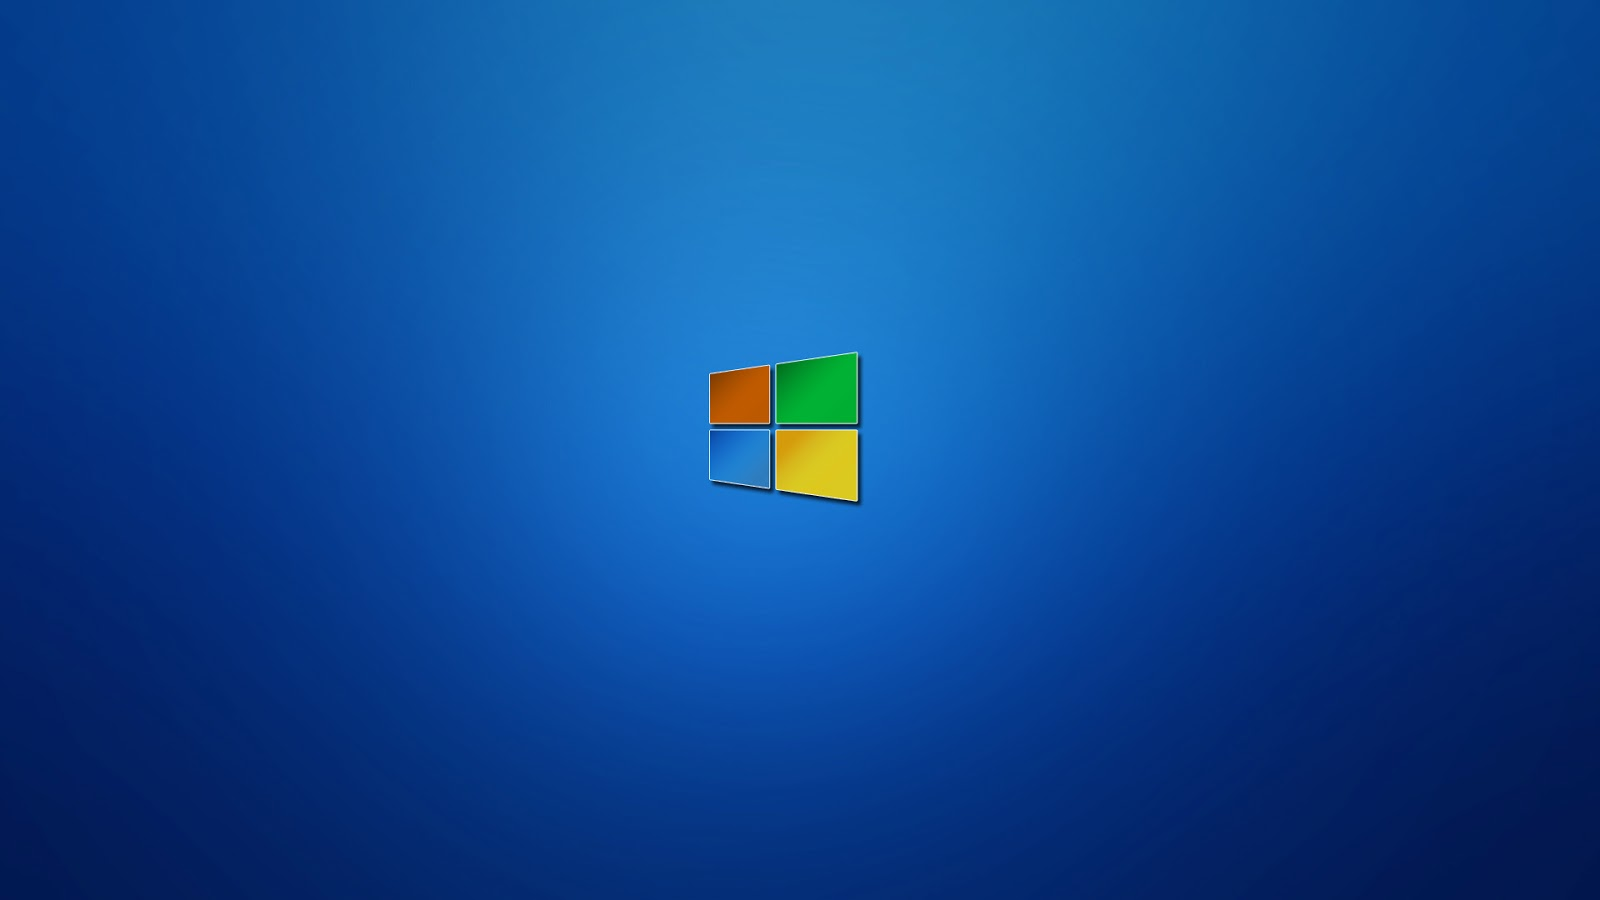 hd windows 8 and windows 7 wallpaper for backgrounds 1600x900